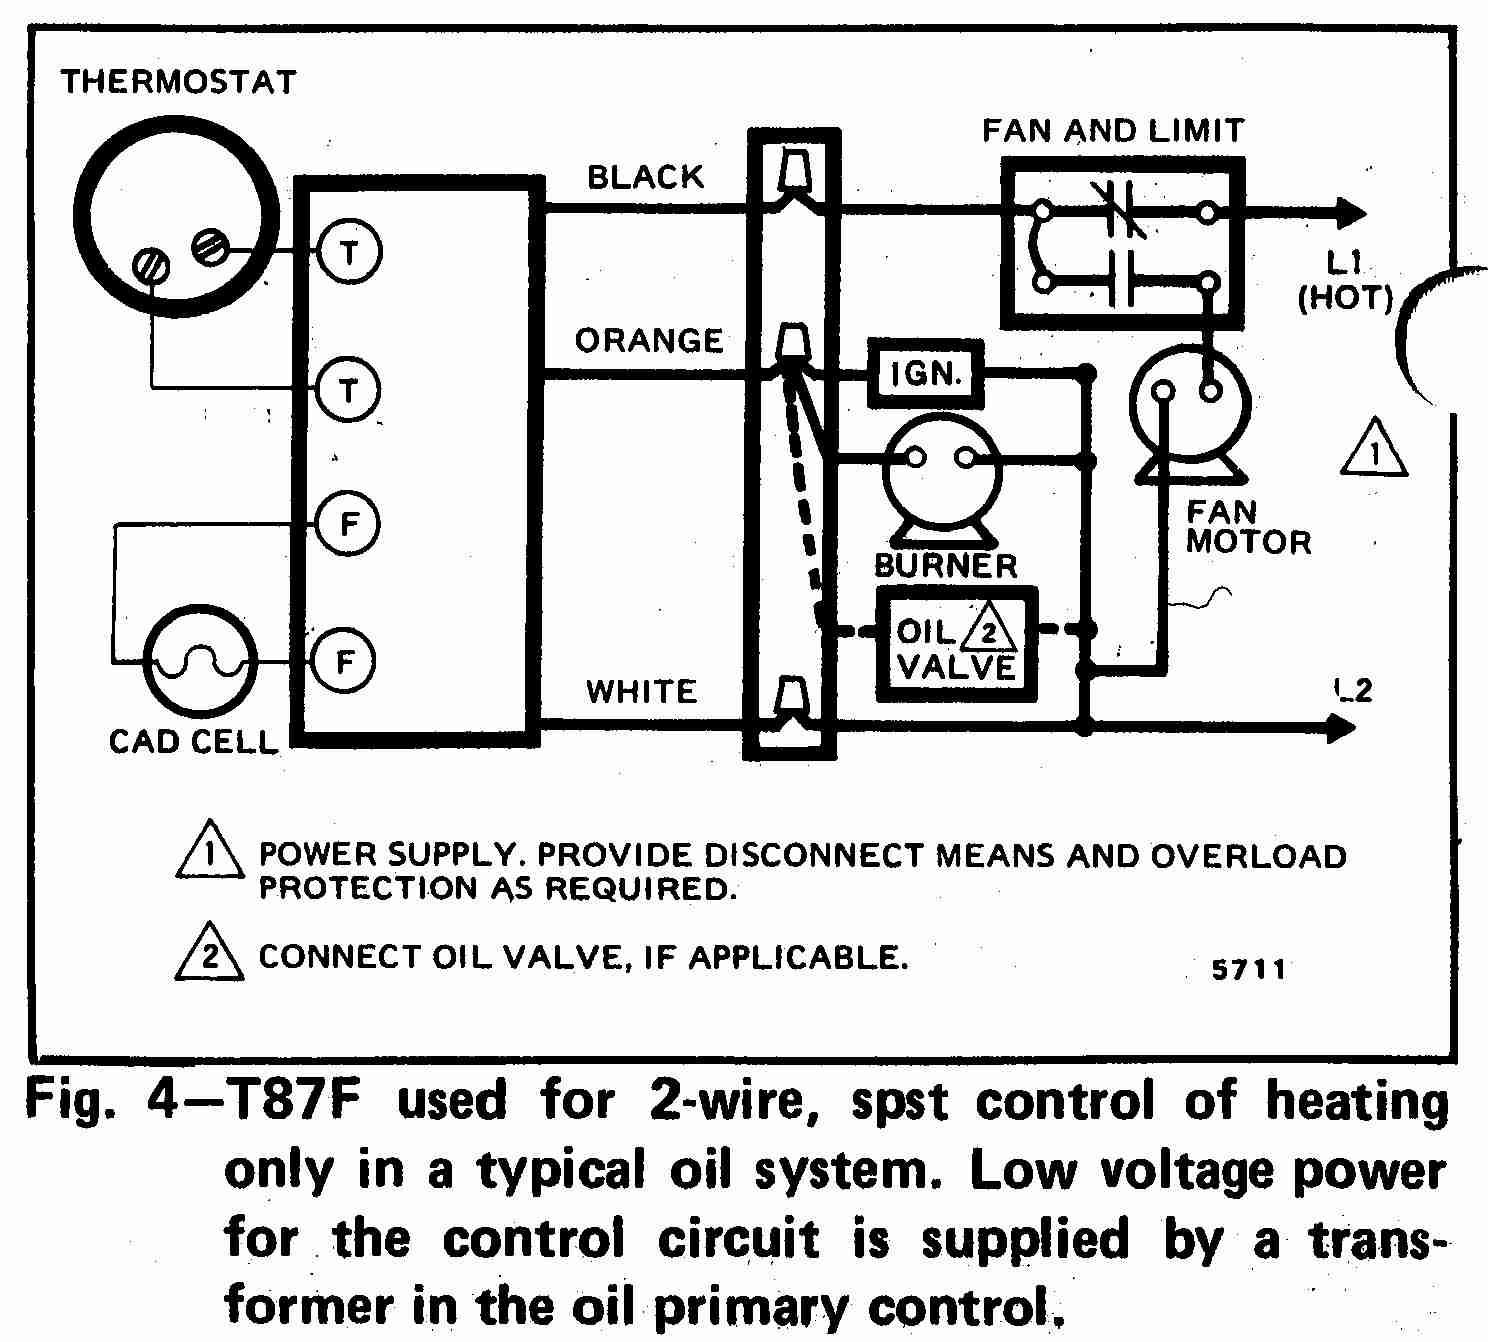 hight resolution of room thermostat wiring diagrams for hvac systems colors wiring diagrams hvac honeywell t87f thermostat wiring diagram